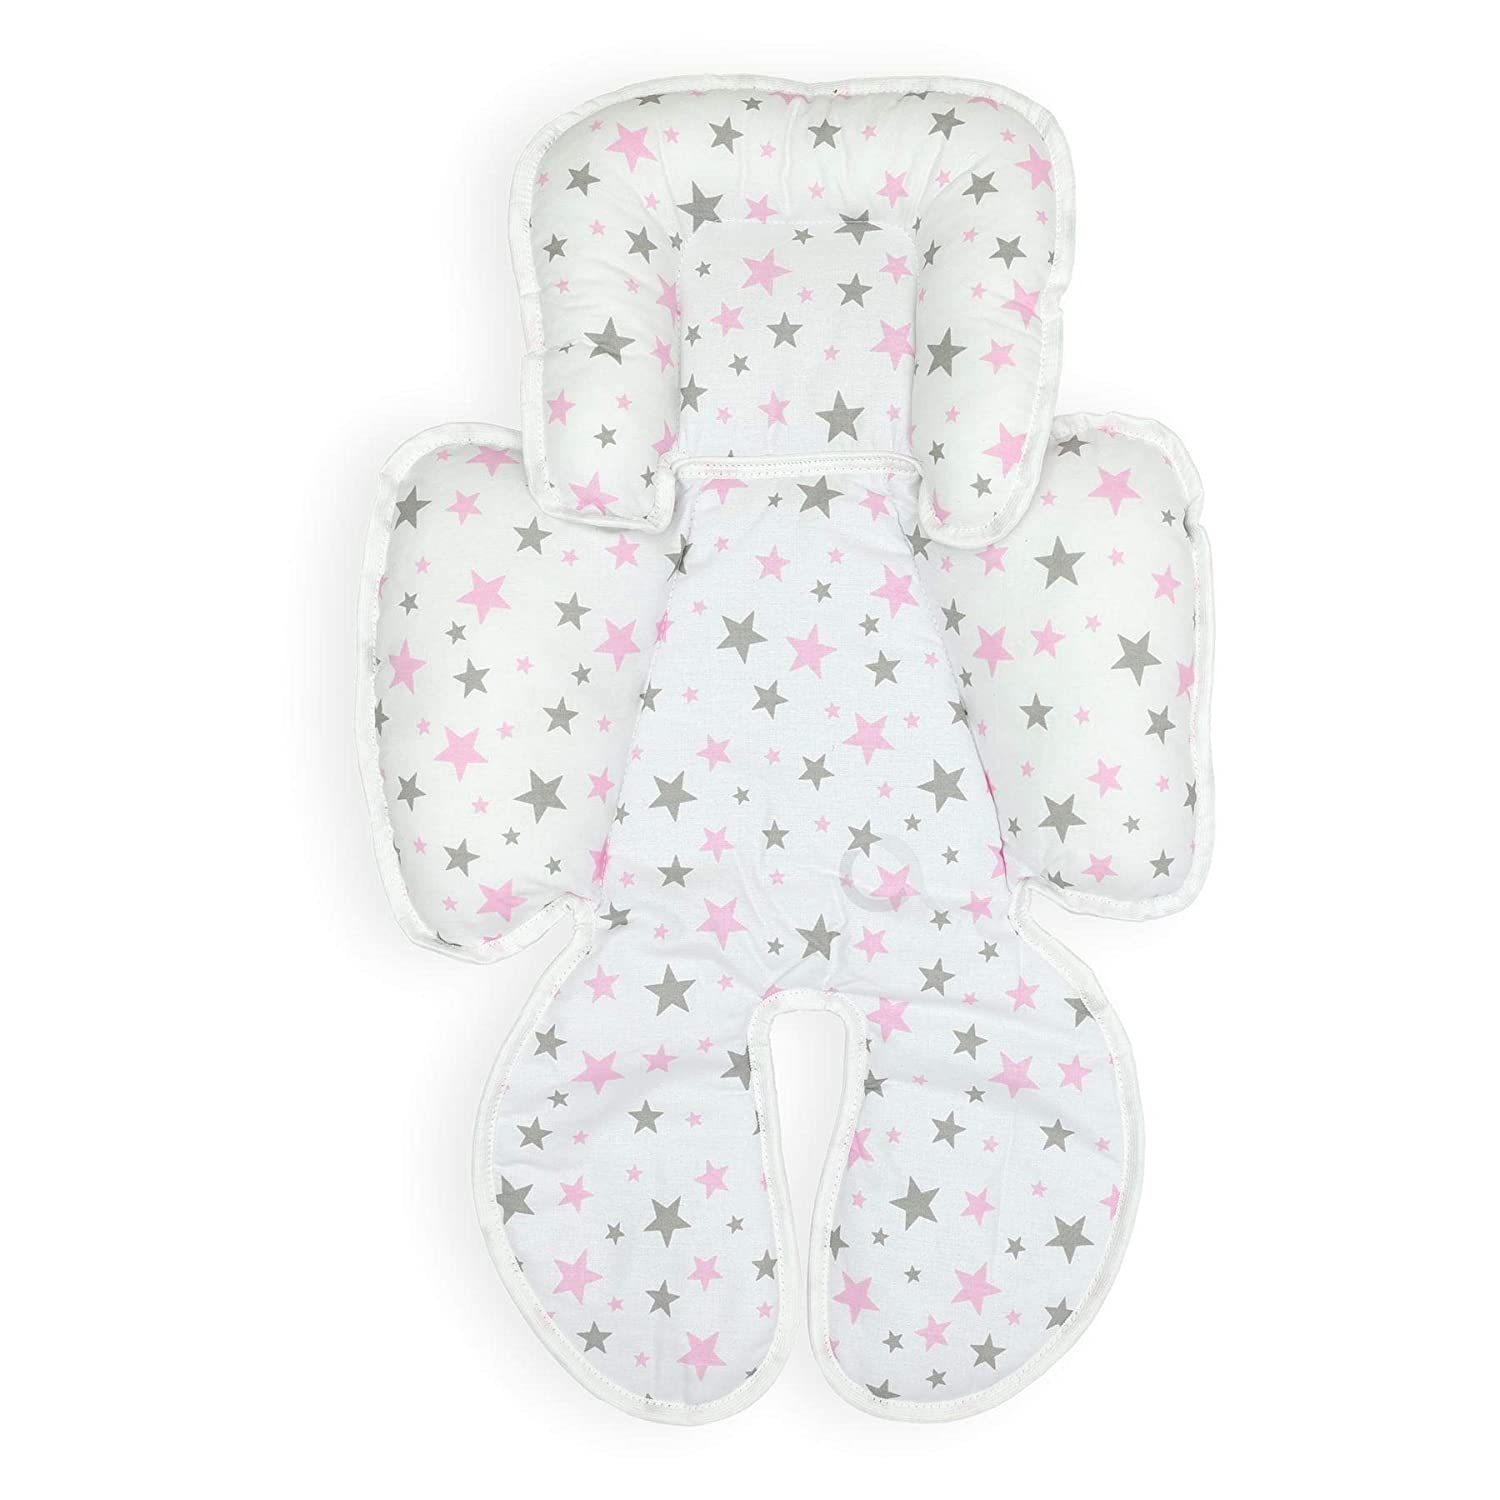 Reducer Support Cushion for Head /& Body Baby Support Made in Cotton Antiallergic